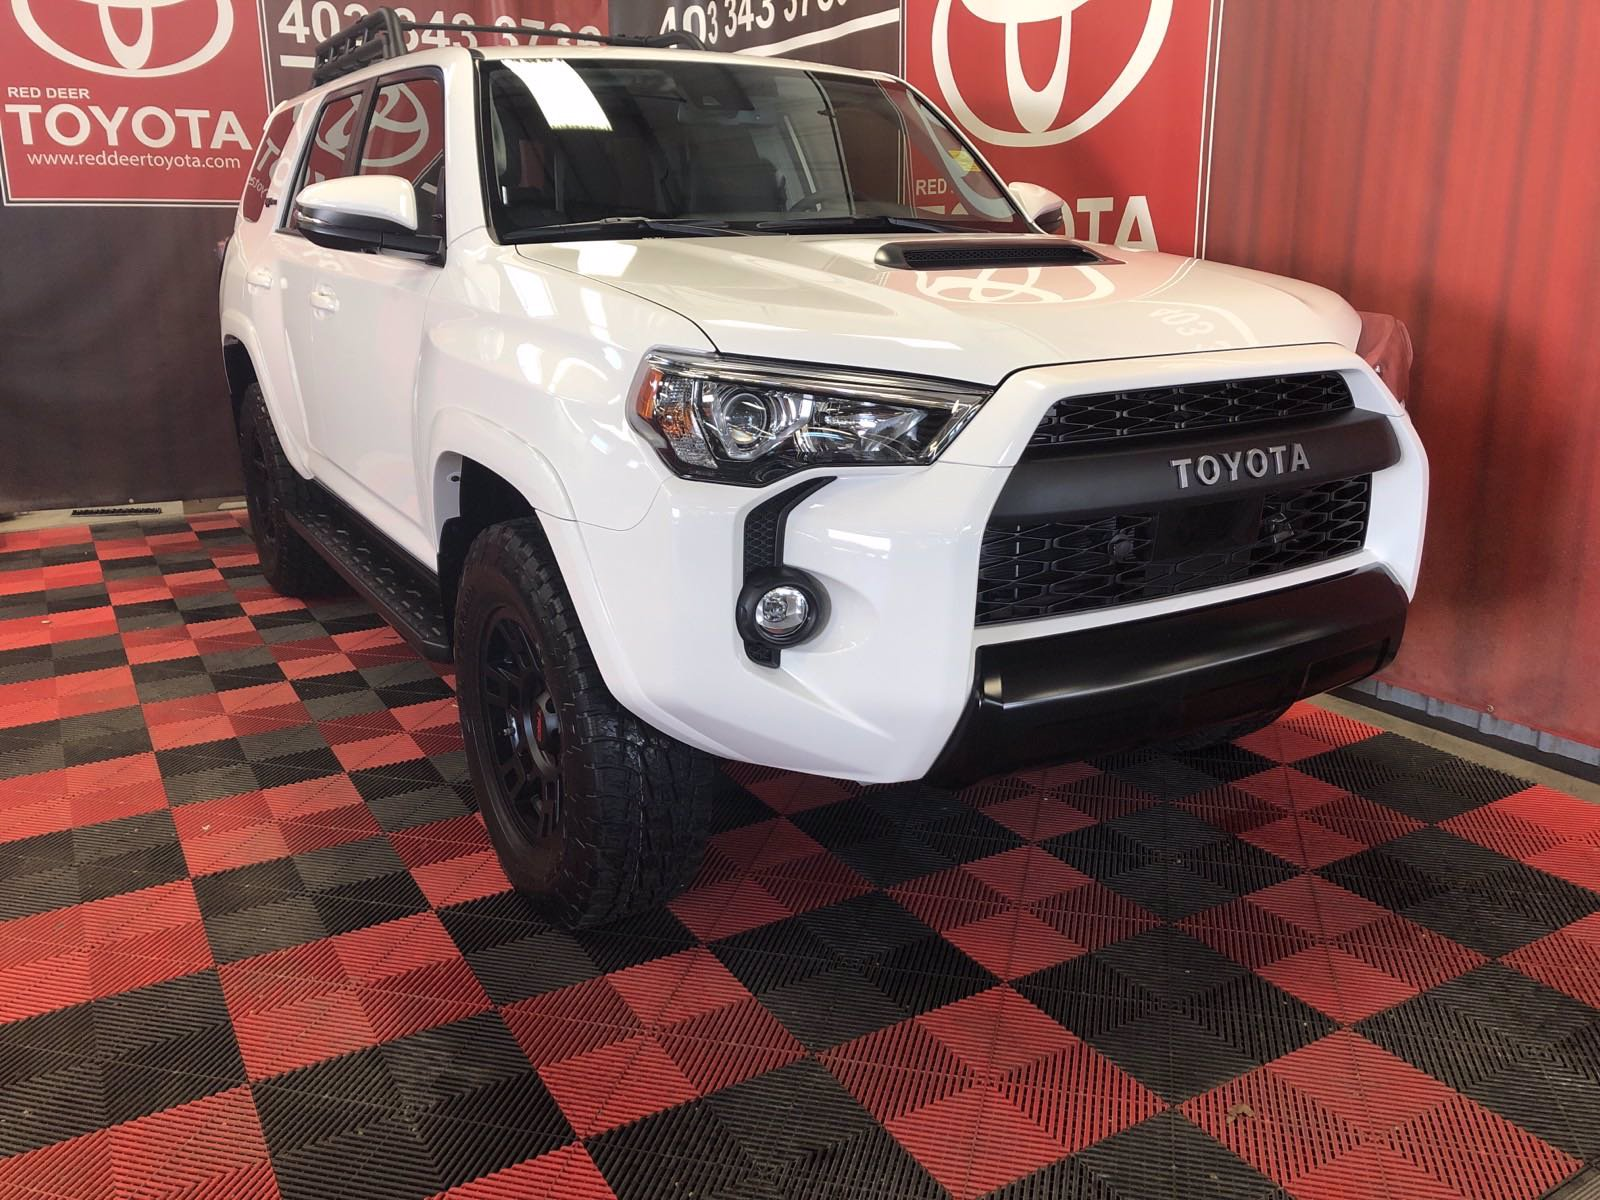 New 2020 Toyota 4Runner Pro 4WD